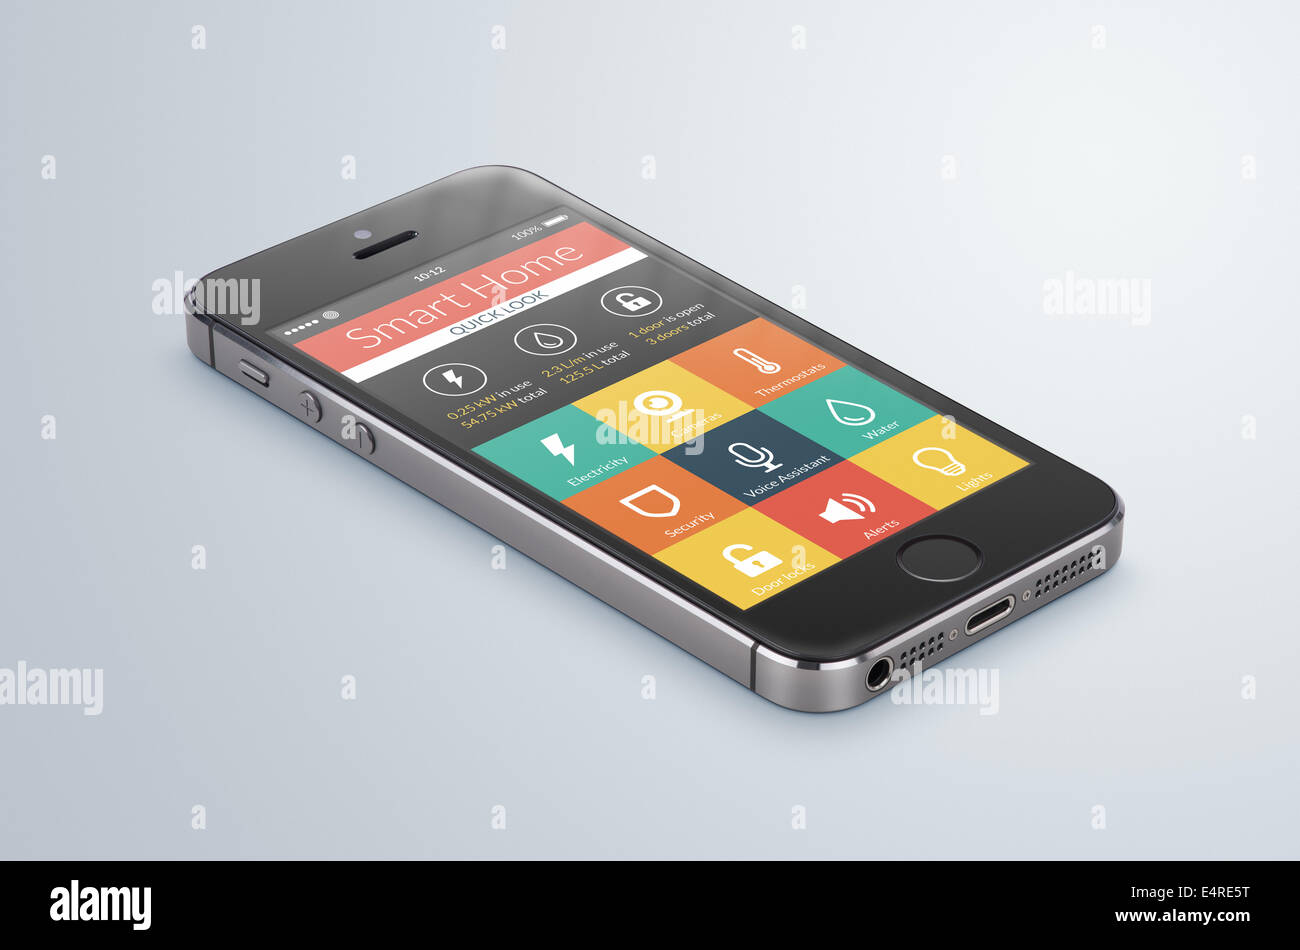 Black modern smartphone with smarthome application on the screen lies on the gray surface. For access to all of - Stock Image